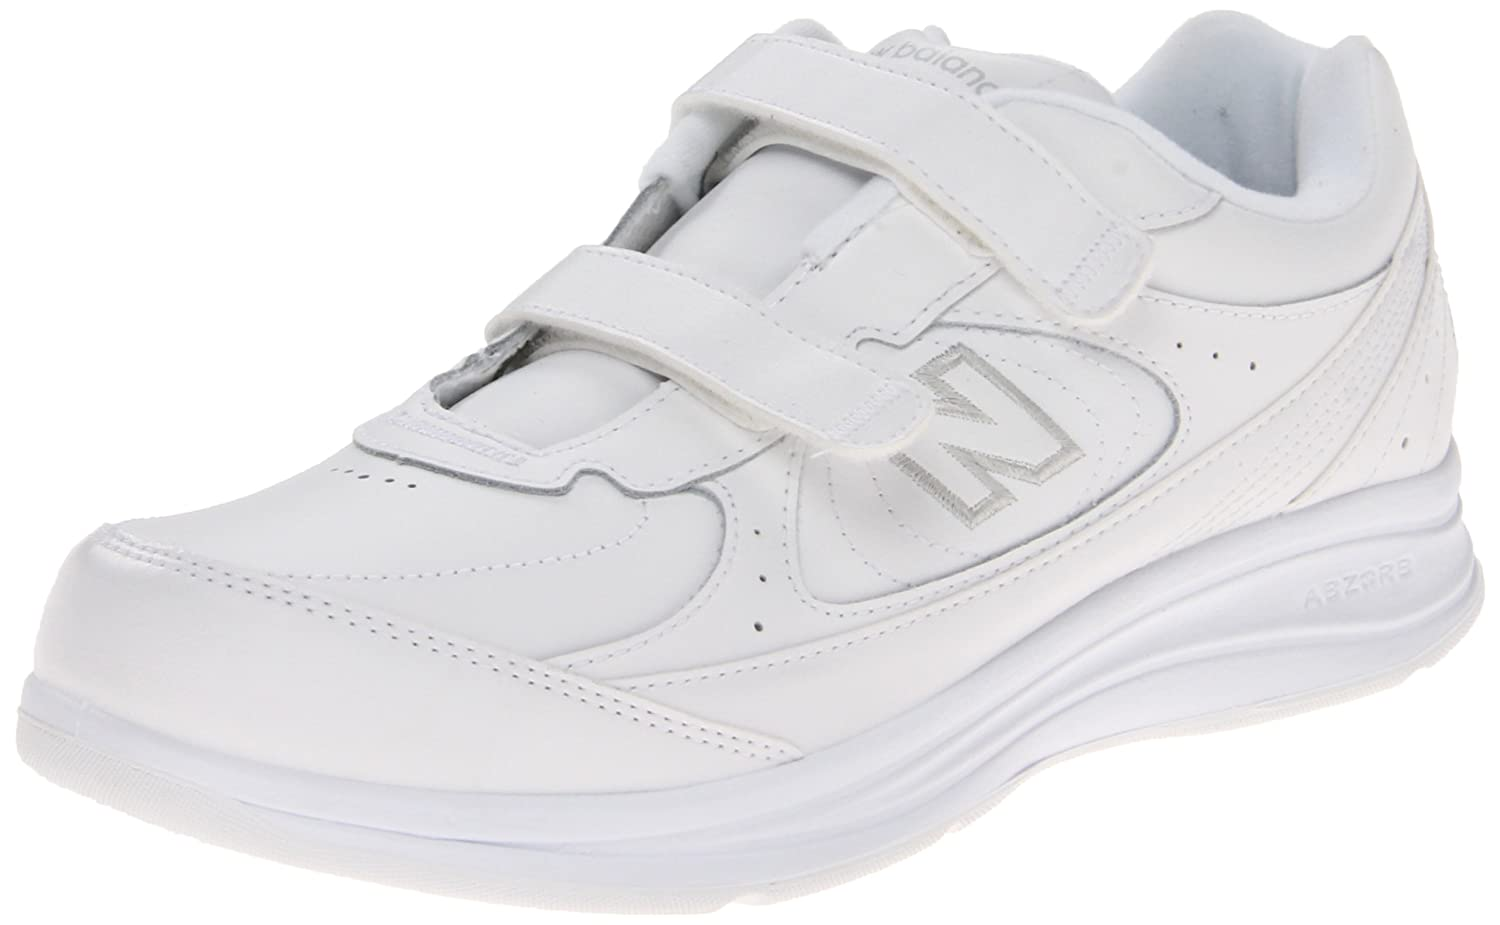 New Balance Women's WW577 Hook and Loop Walking Shoe B003UHULUE 10.5 D US|White